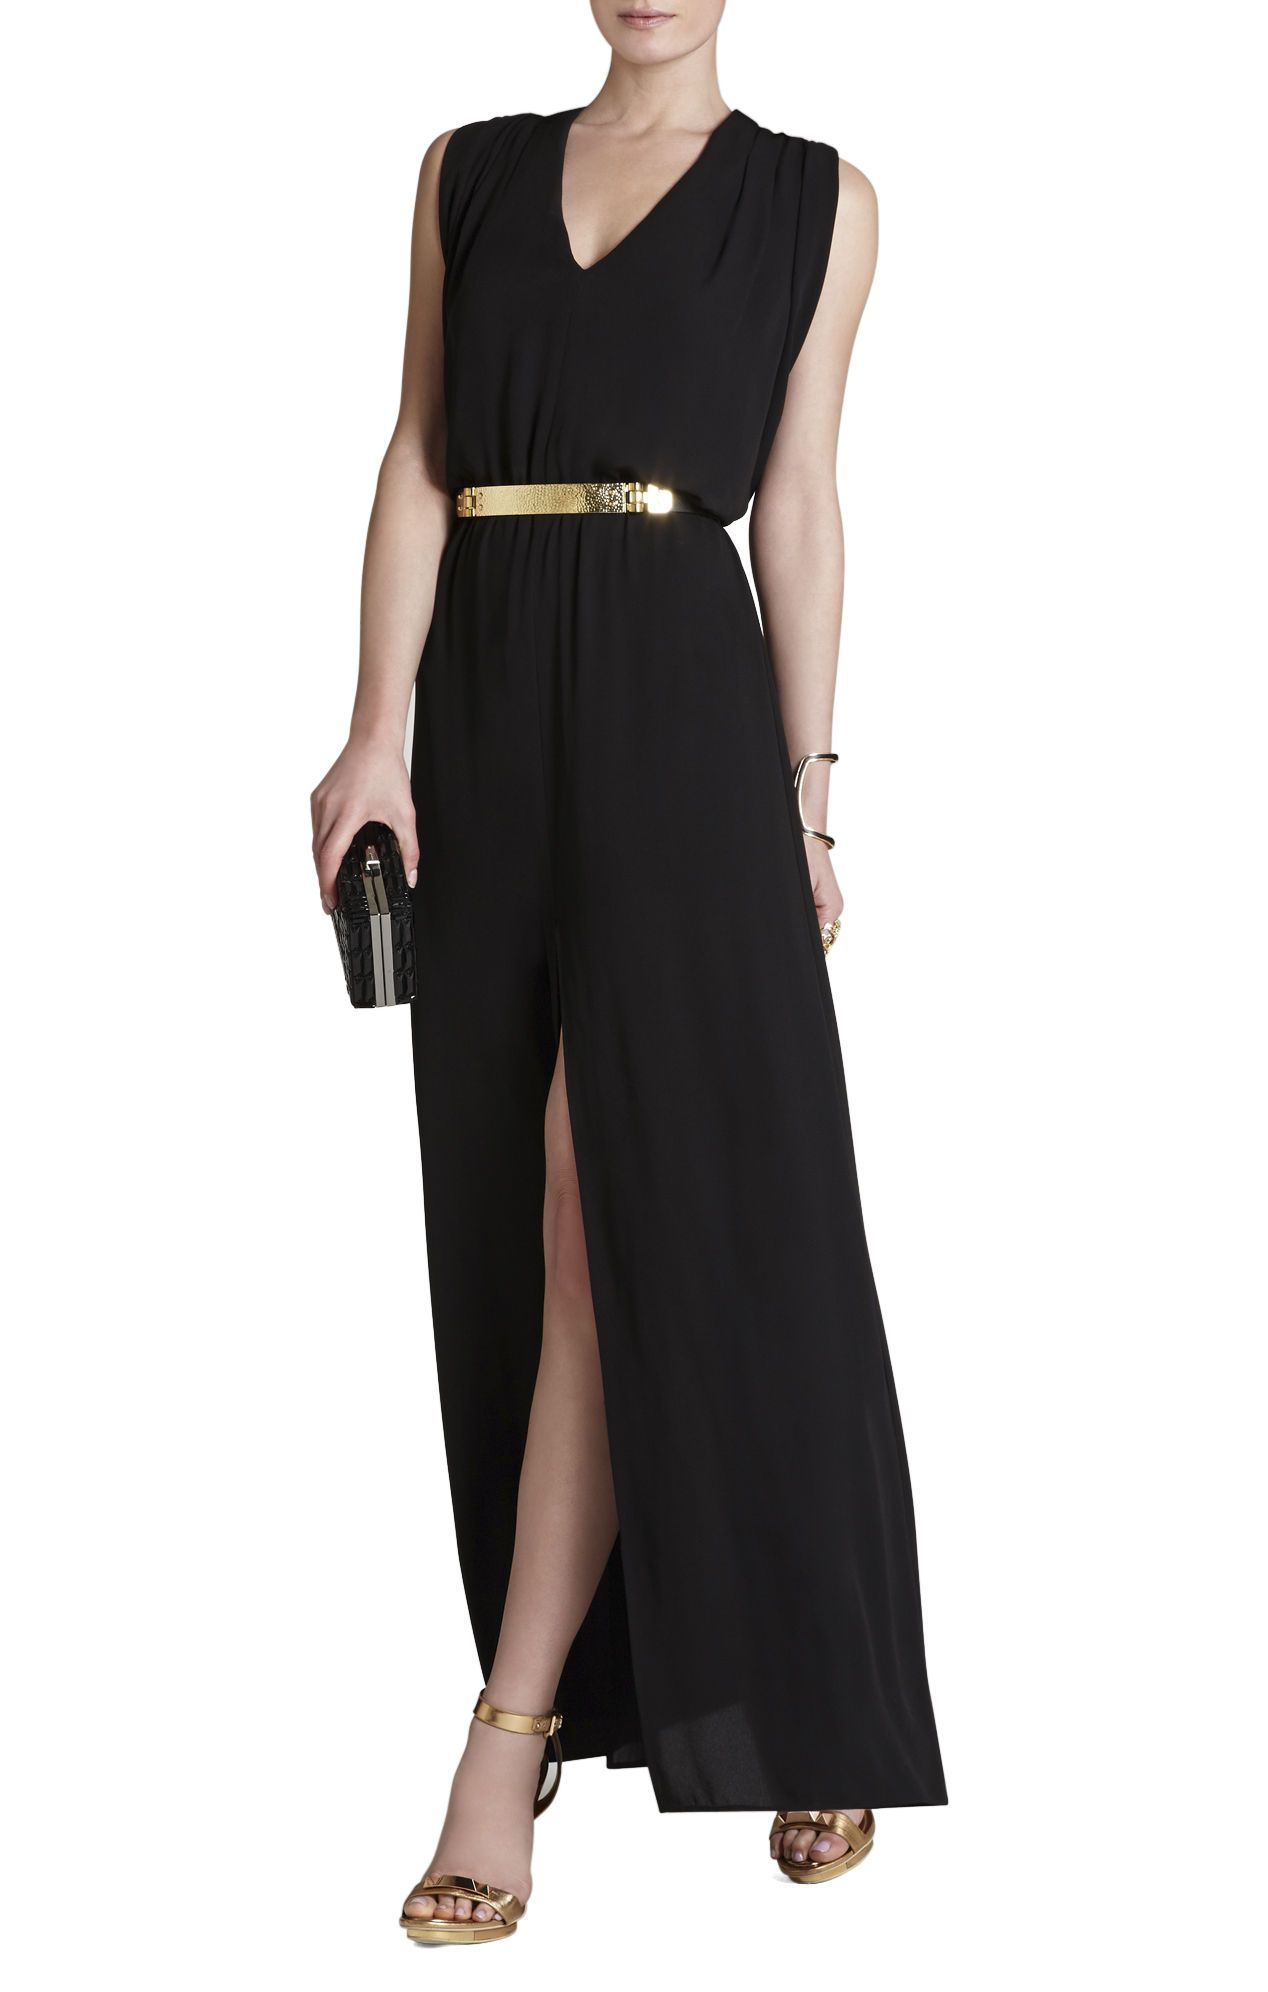 Best wedding dress boutiques in london  Raymee Sleeveless Draped WaistTie Maxi Dress  BCBG  Night out